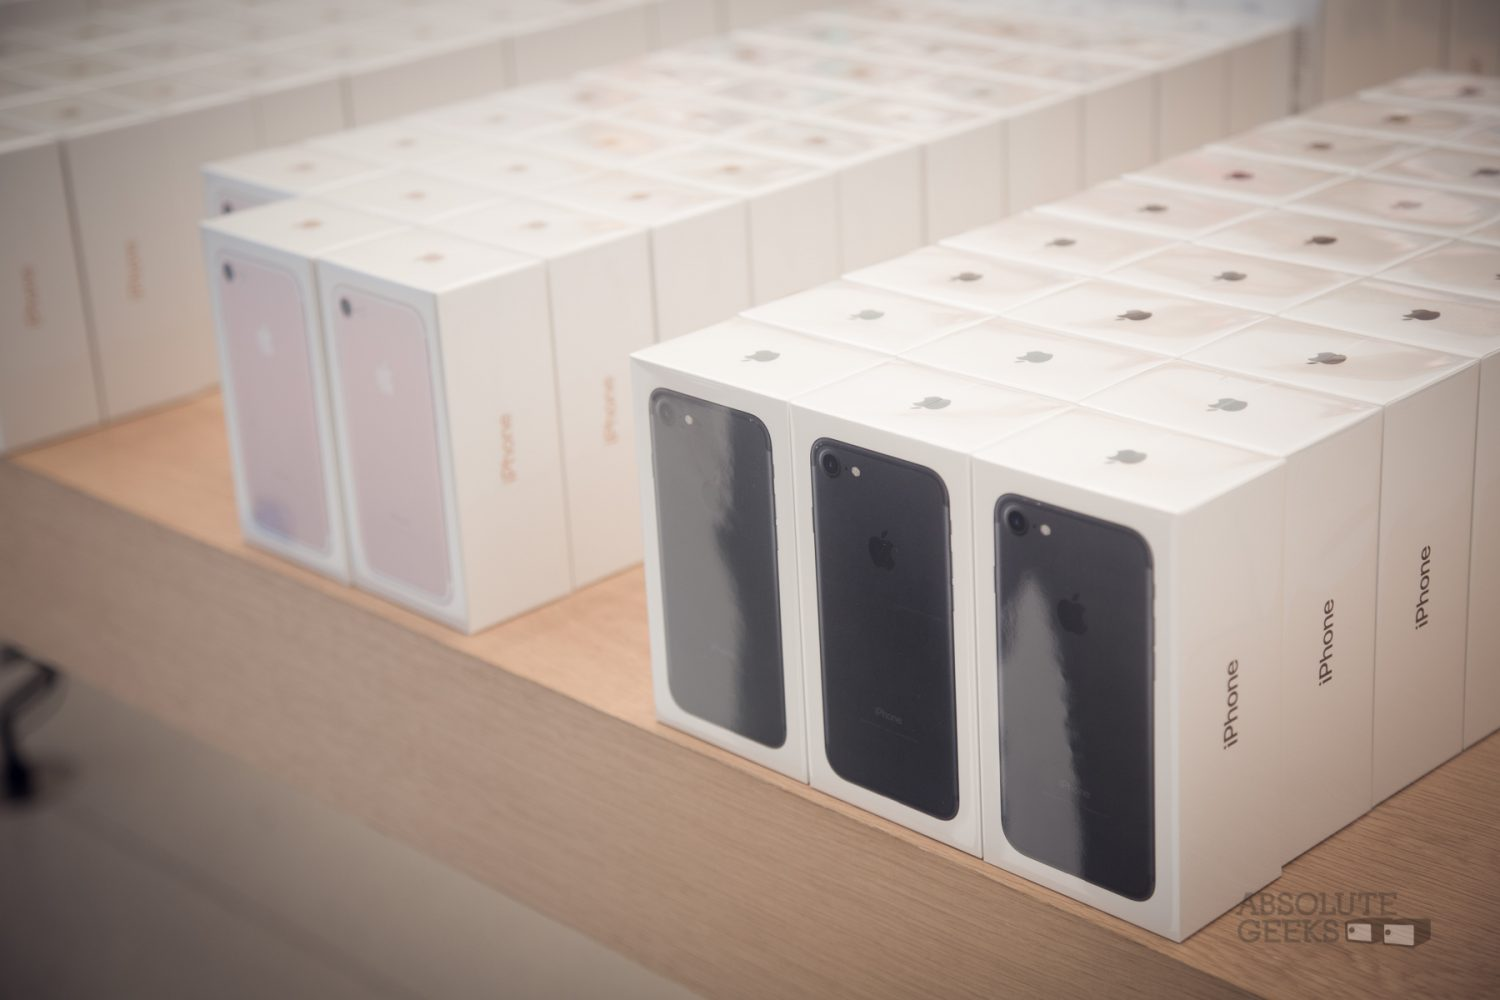 In Pictures: iPhone 7 Launch in Dubai